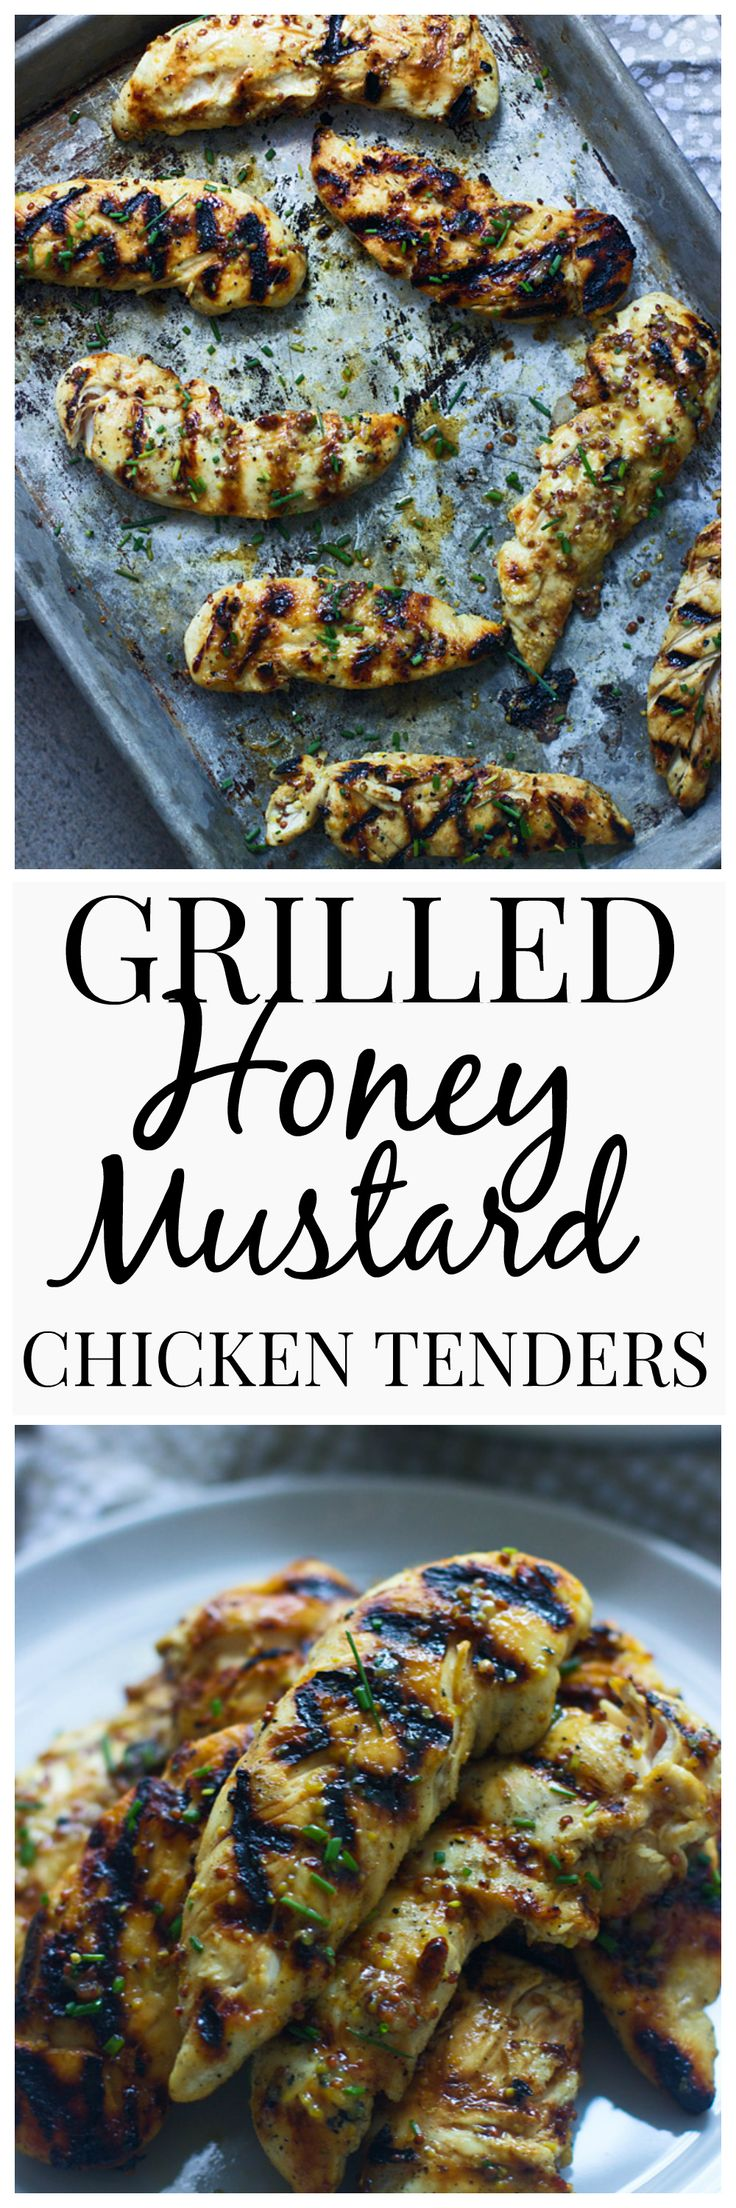 Grilled Honey Mustard Chicken Tenders - Virtually no prep, and no mess! The perfect weeknight meal.